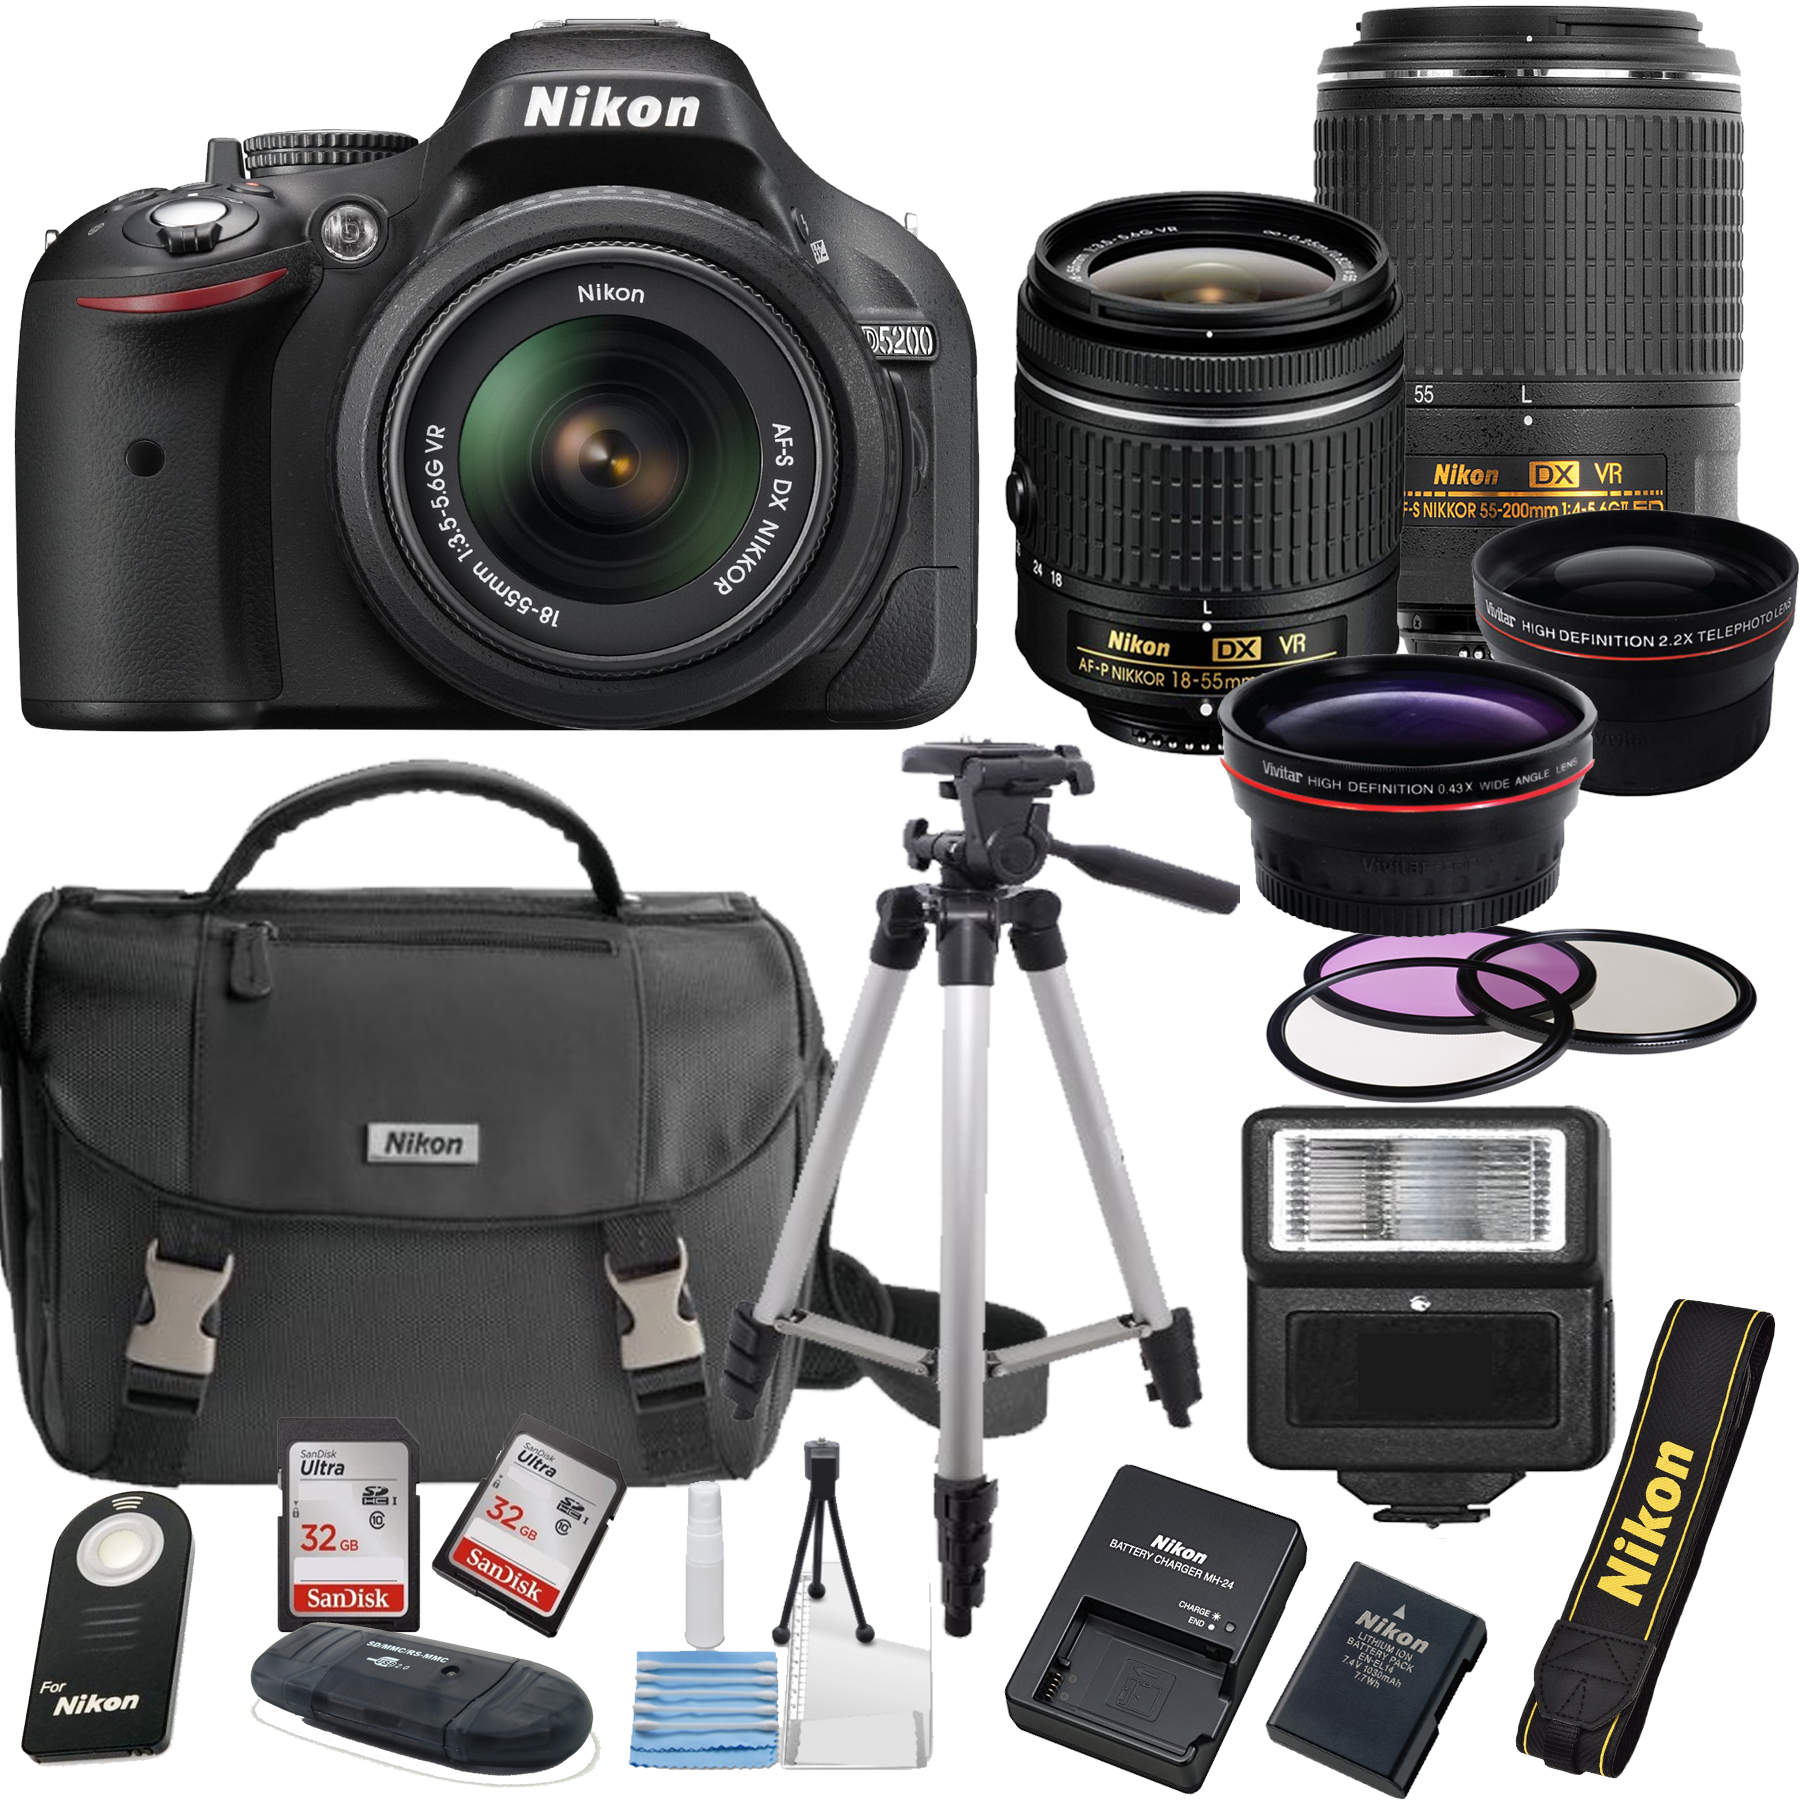 Nikon D5200 24.1 MP DSLR Camera + 18-55mm VR Lens Kit + 5...